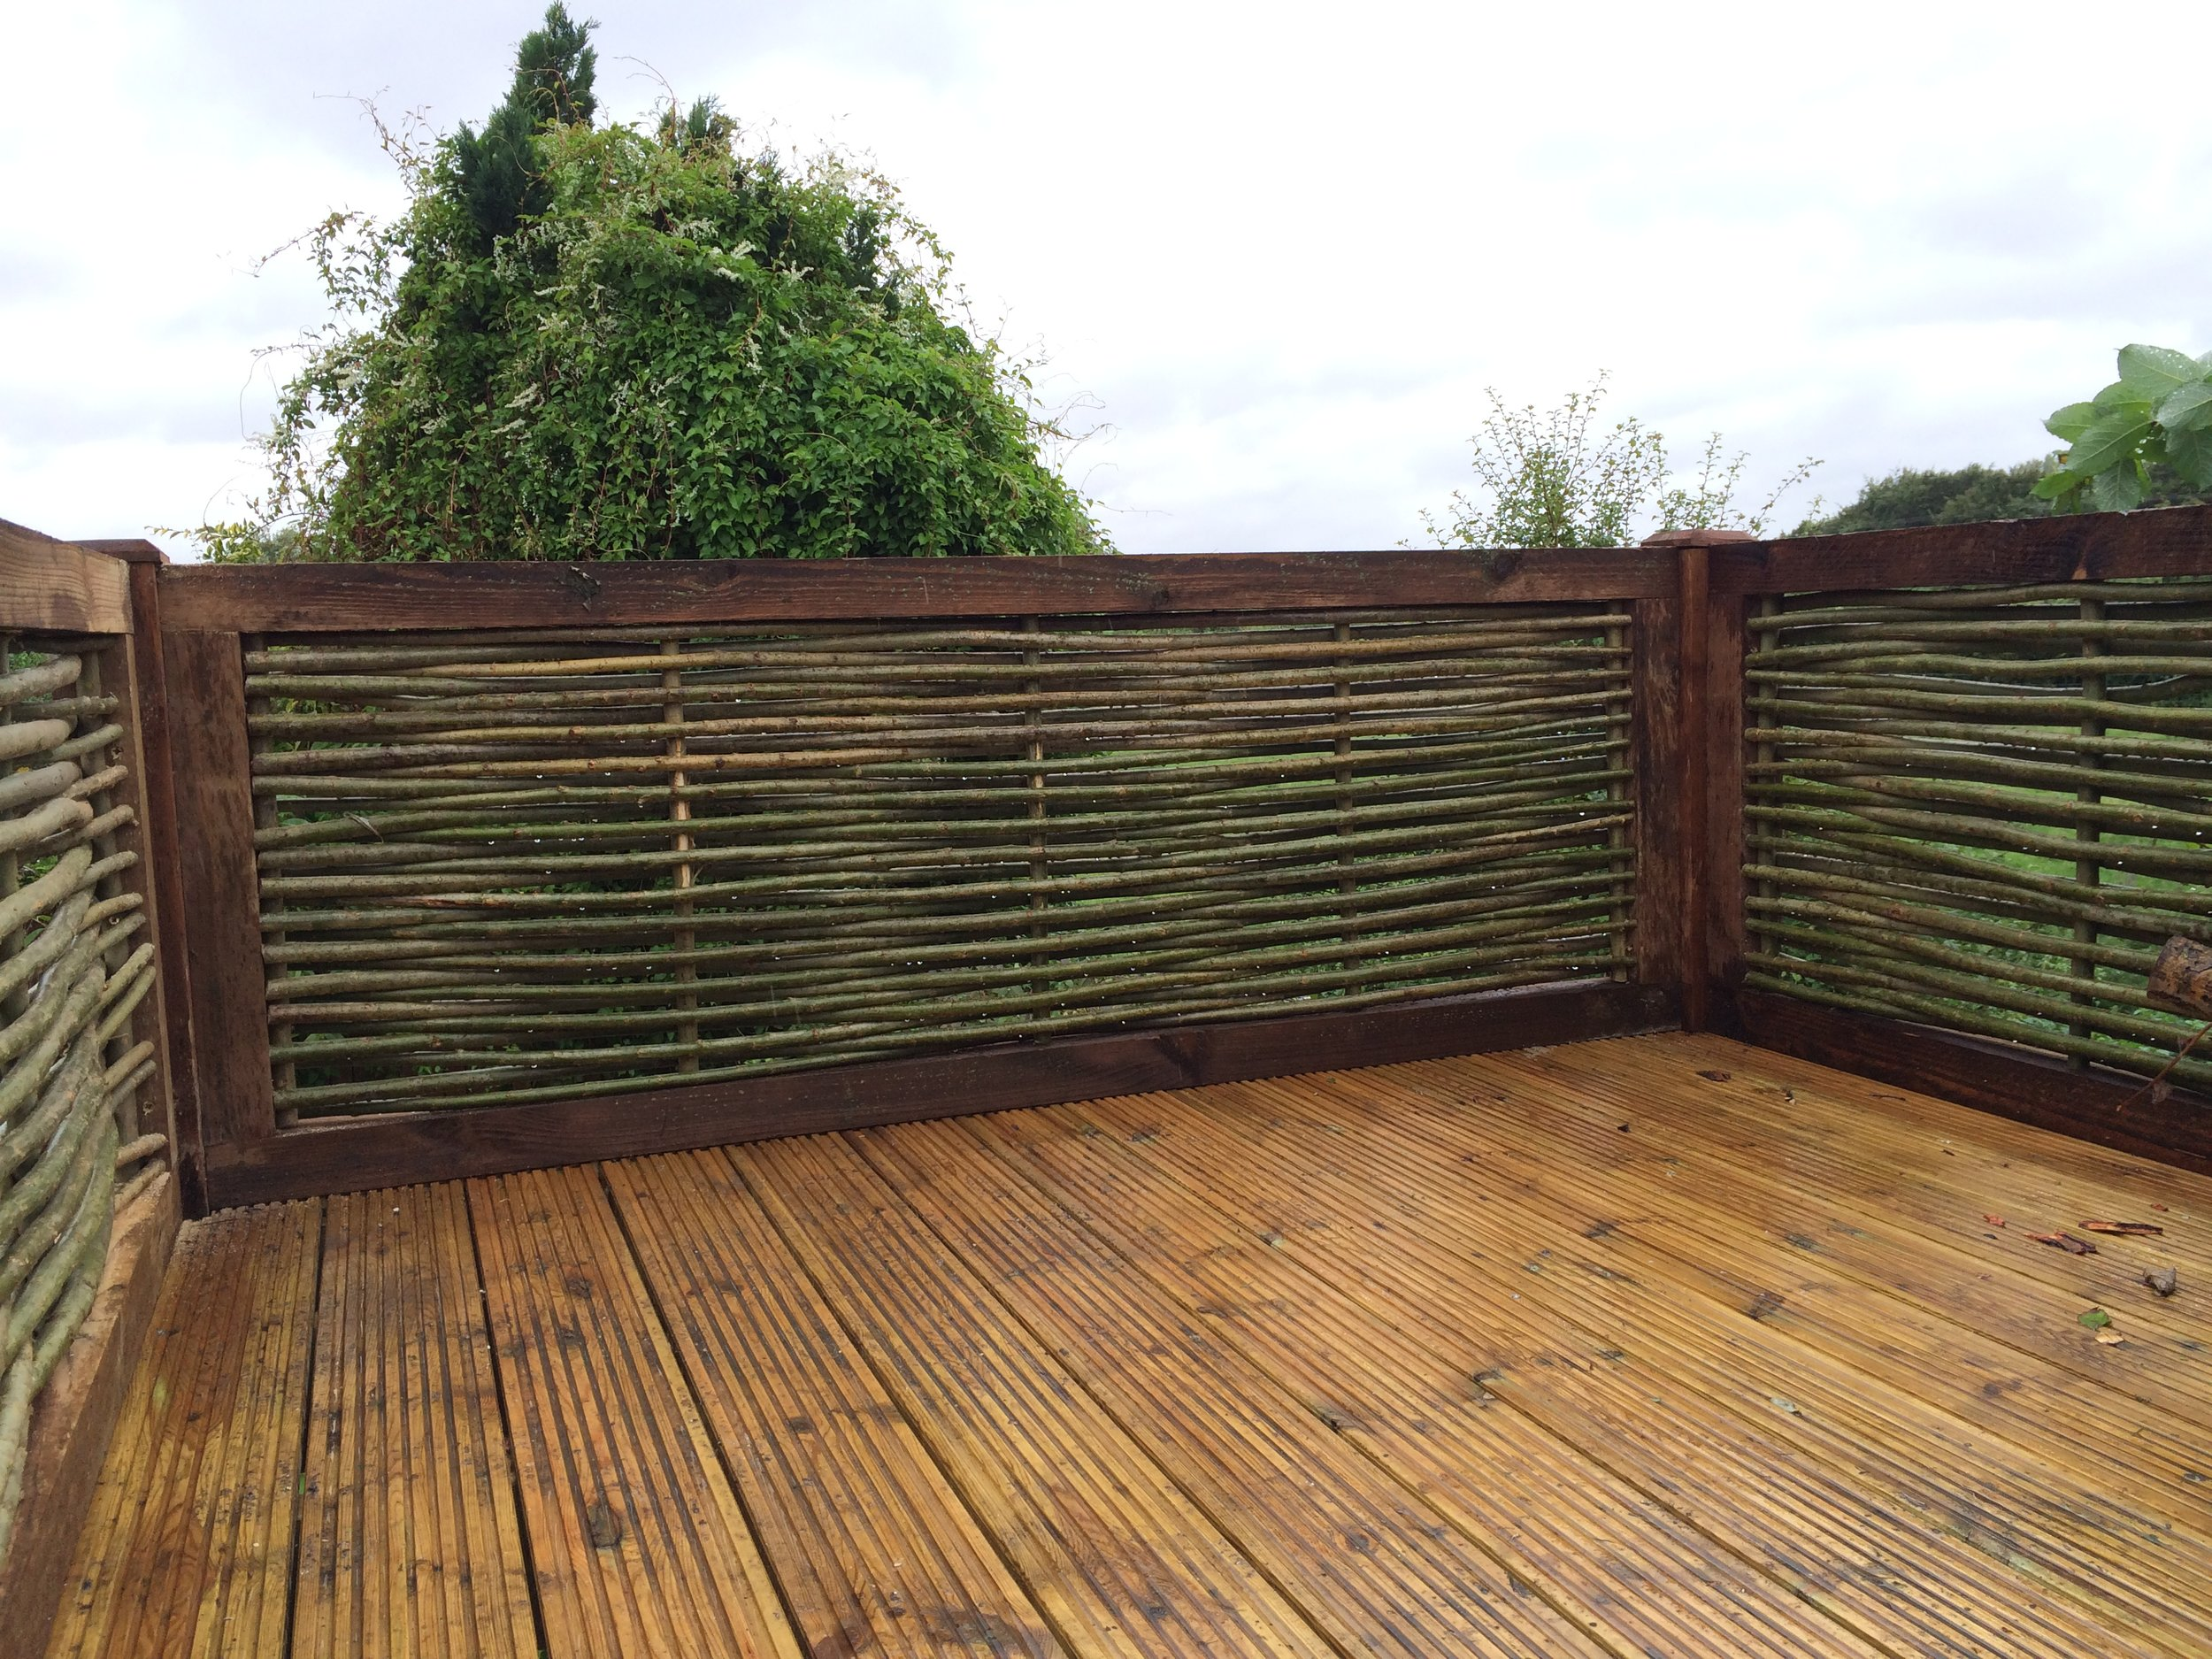 Elegant woven willow panels